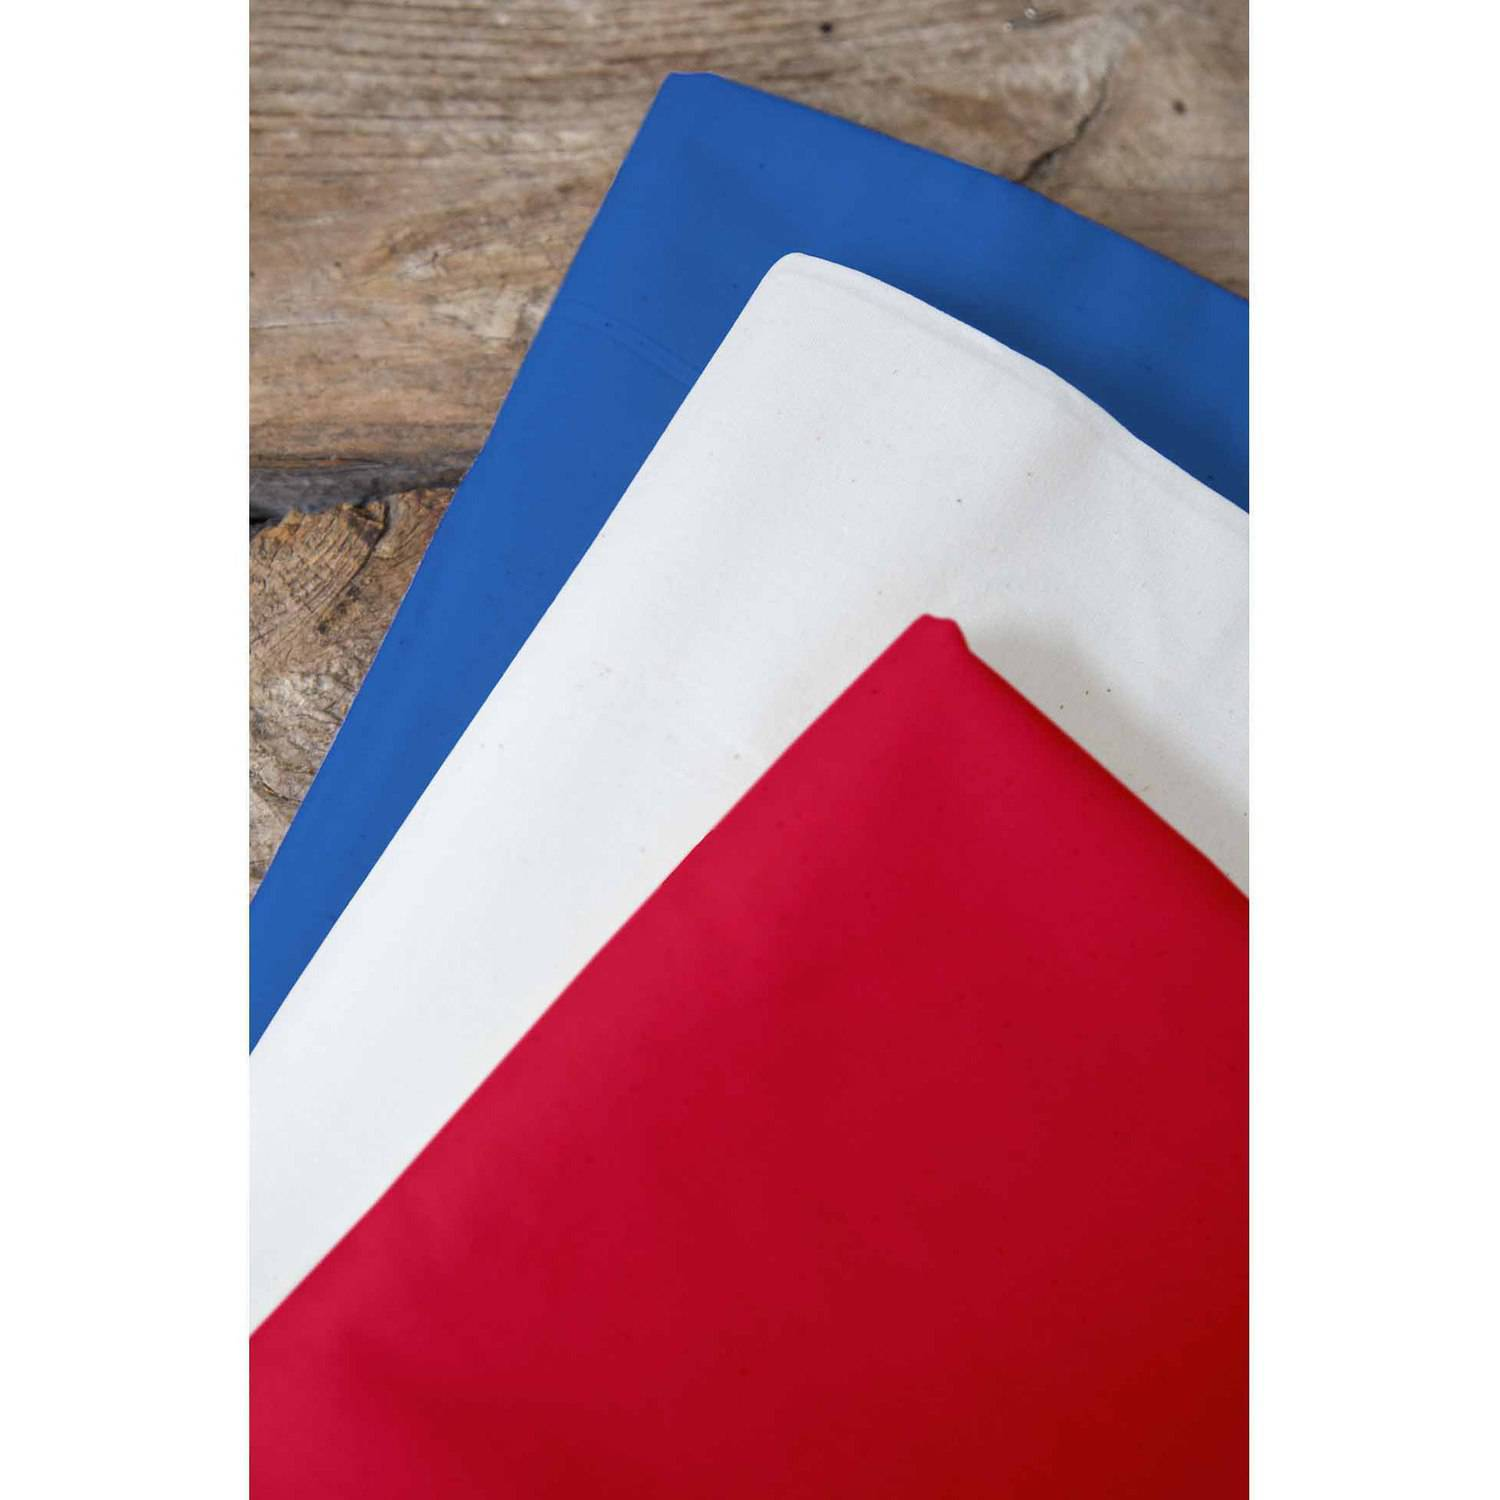 "Uncle Sam Palencia Broadcloth Fabric Bundle, Skipper Blue-White-Poppy Red, 44/45"" Width, 2-yd Cuts"